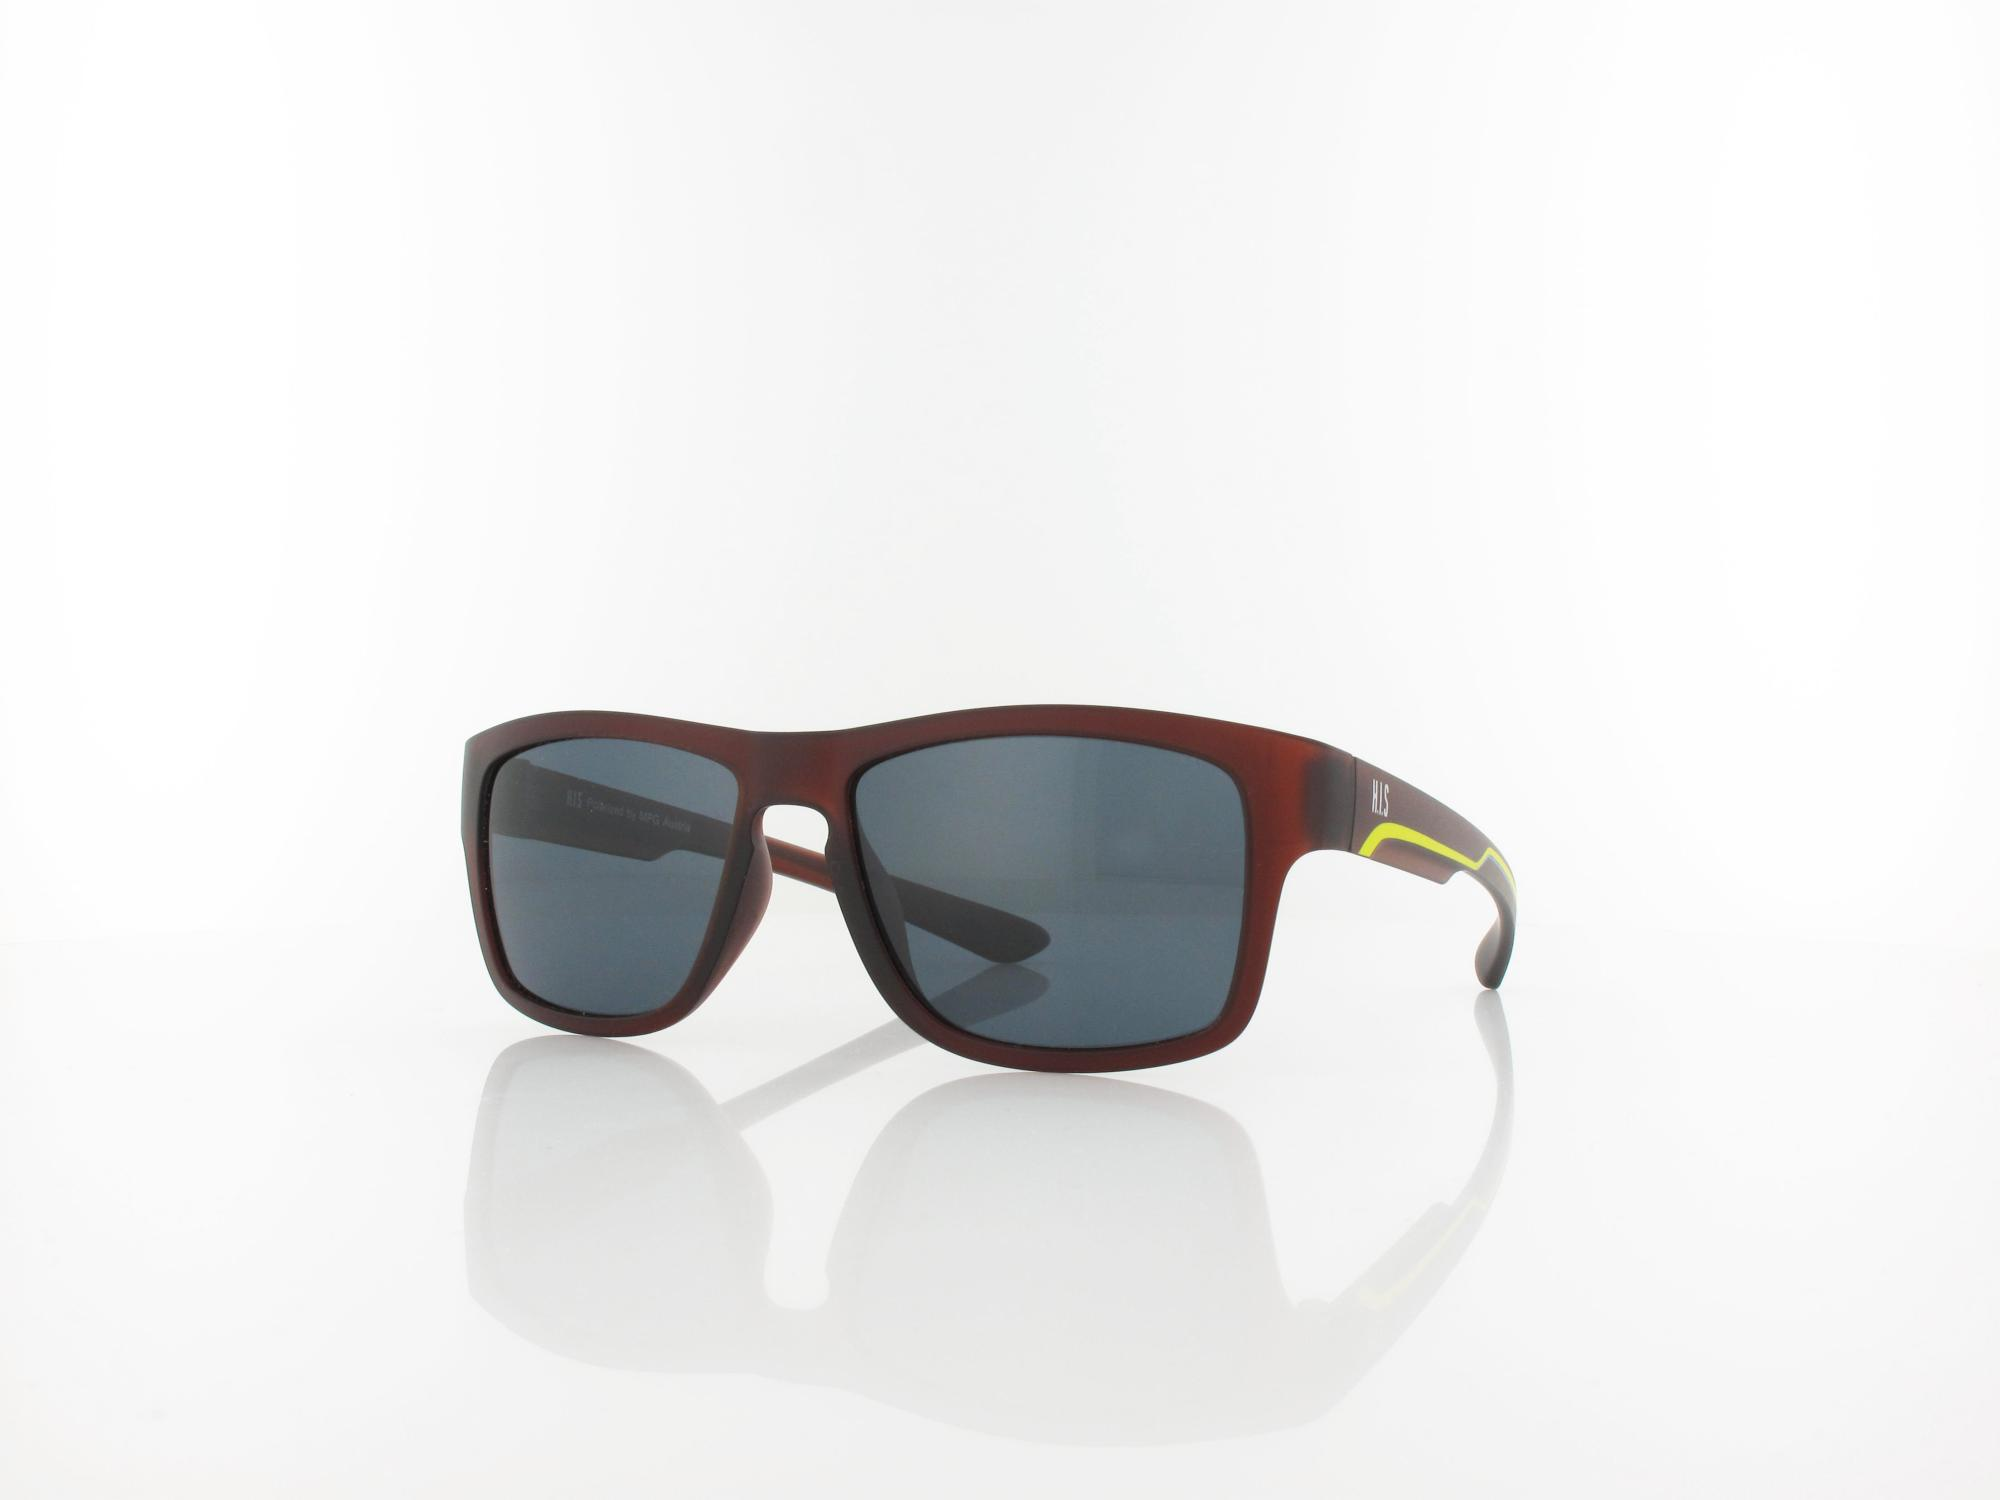 HIS polarized | HPS80103-2 Teen 52 | dark brown / grey polarized